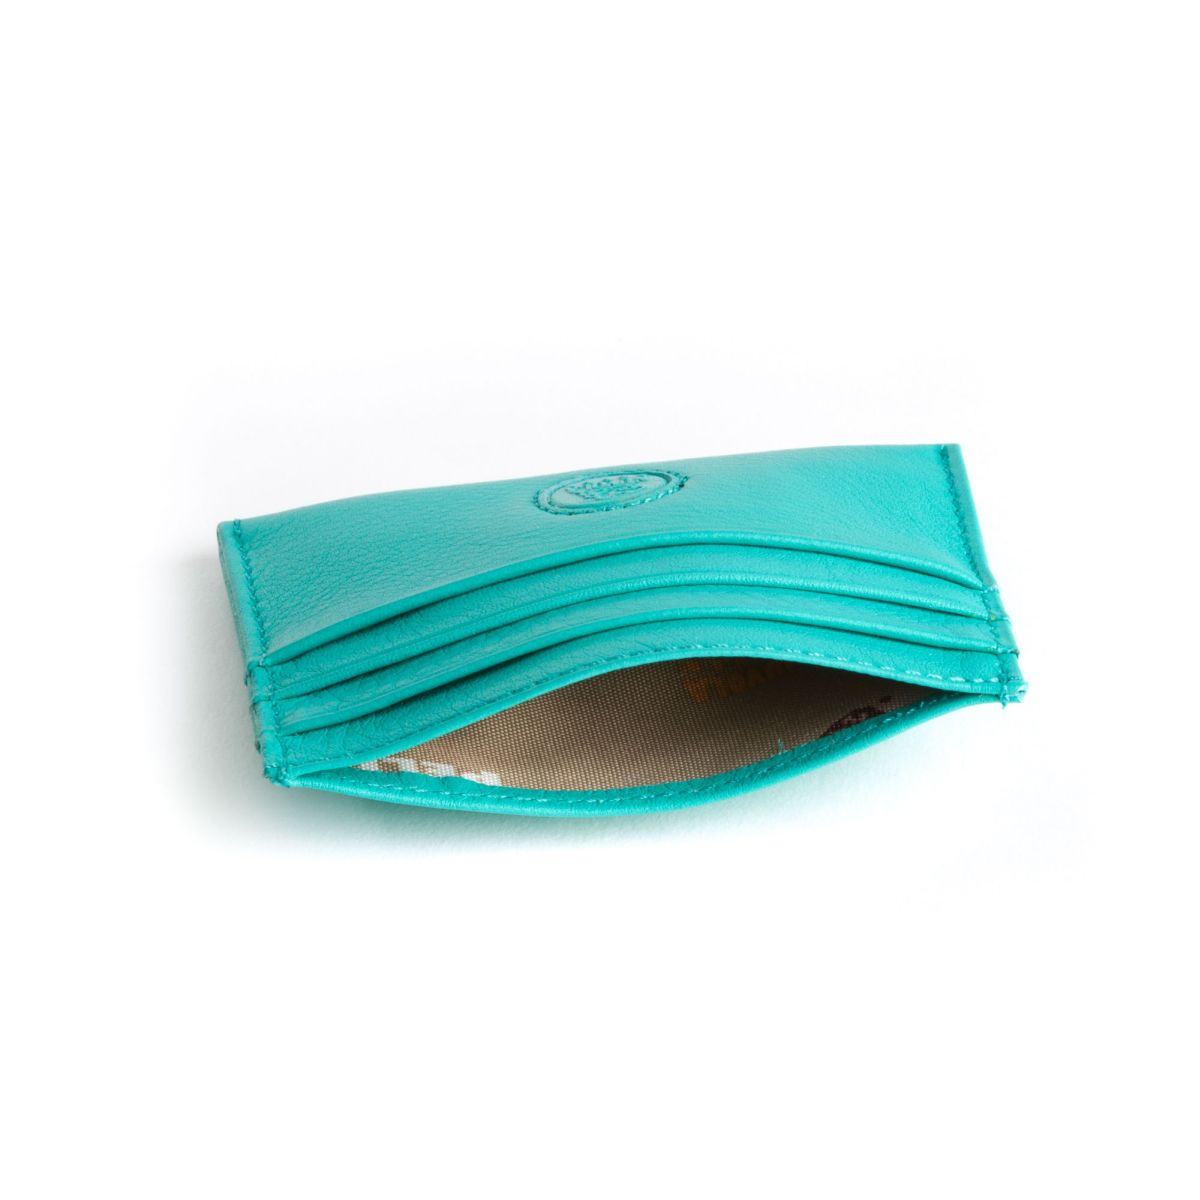 Minimalist leather credit card wallet - Turquoise